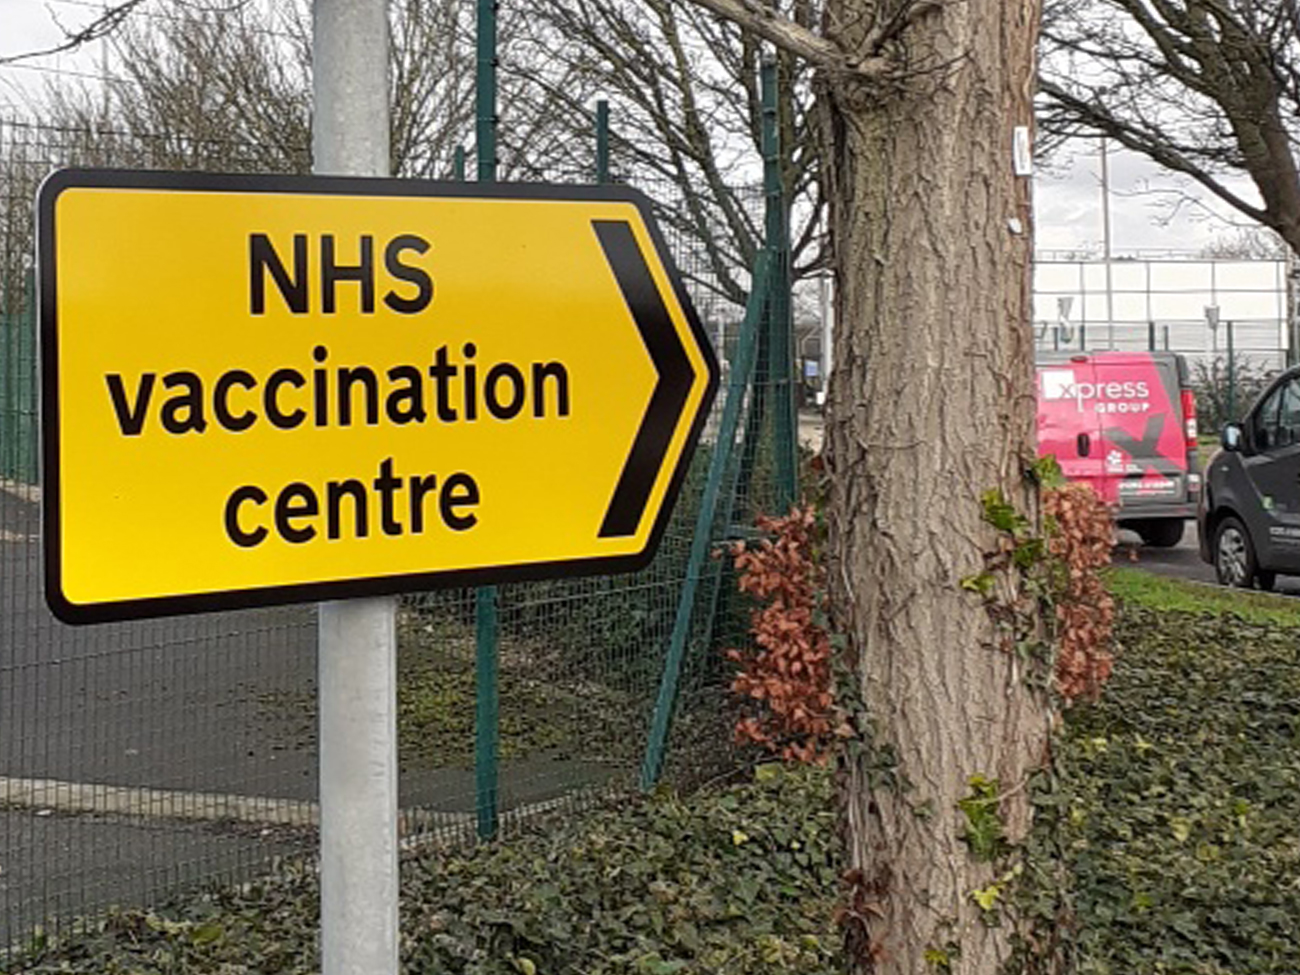 NHS Vaccination Centre road signage